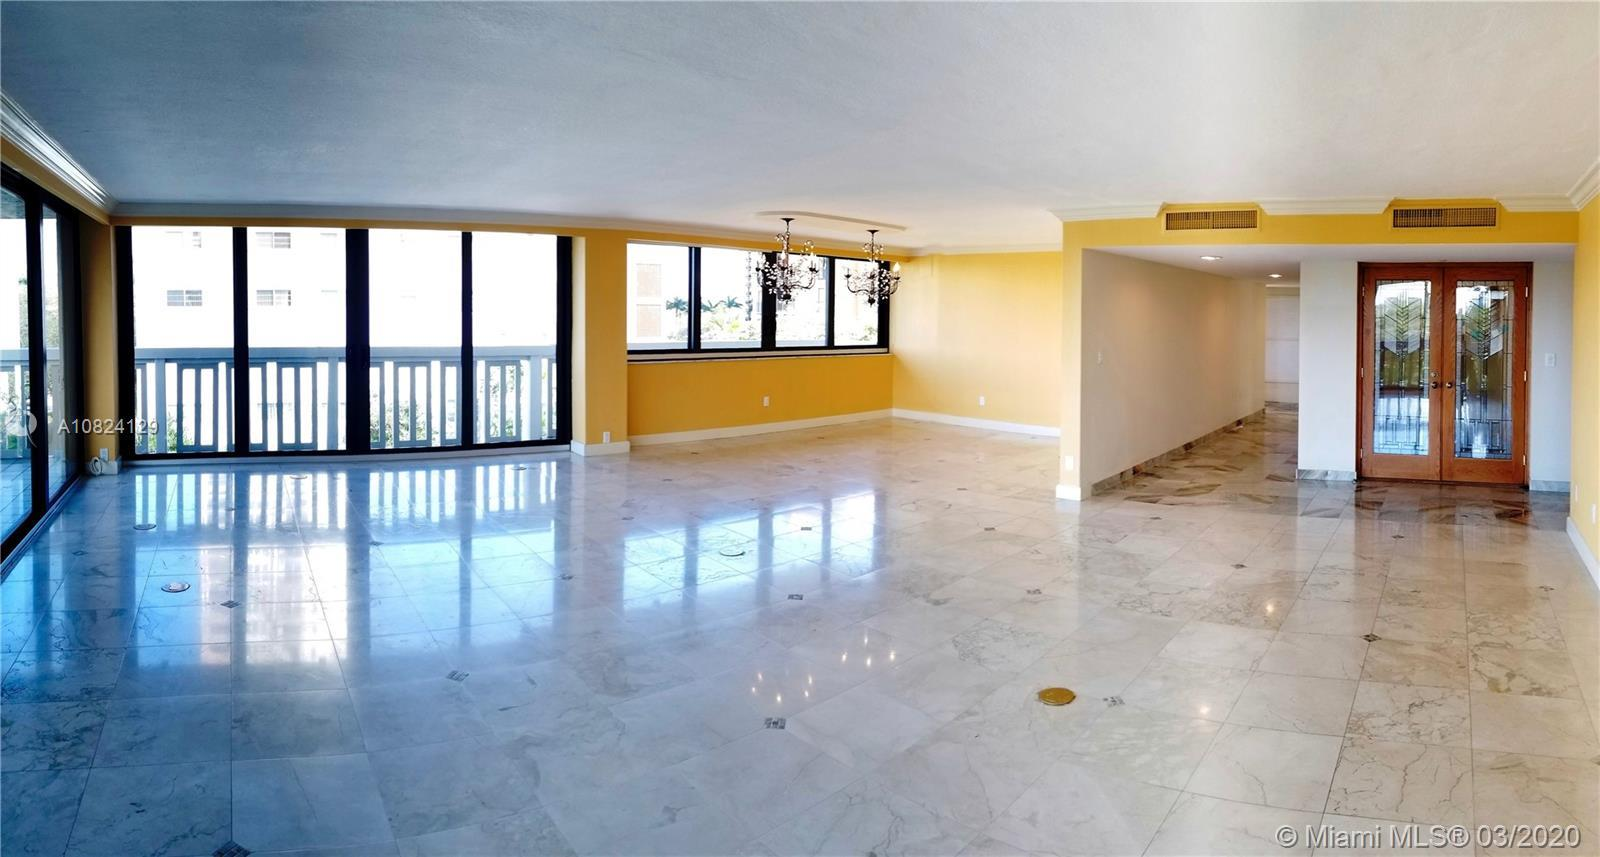 Full floor, 3th floor condo unit with views from every direction, in this private, secure, 12 unit b